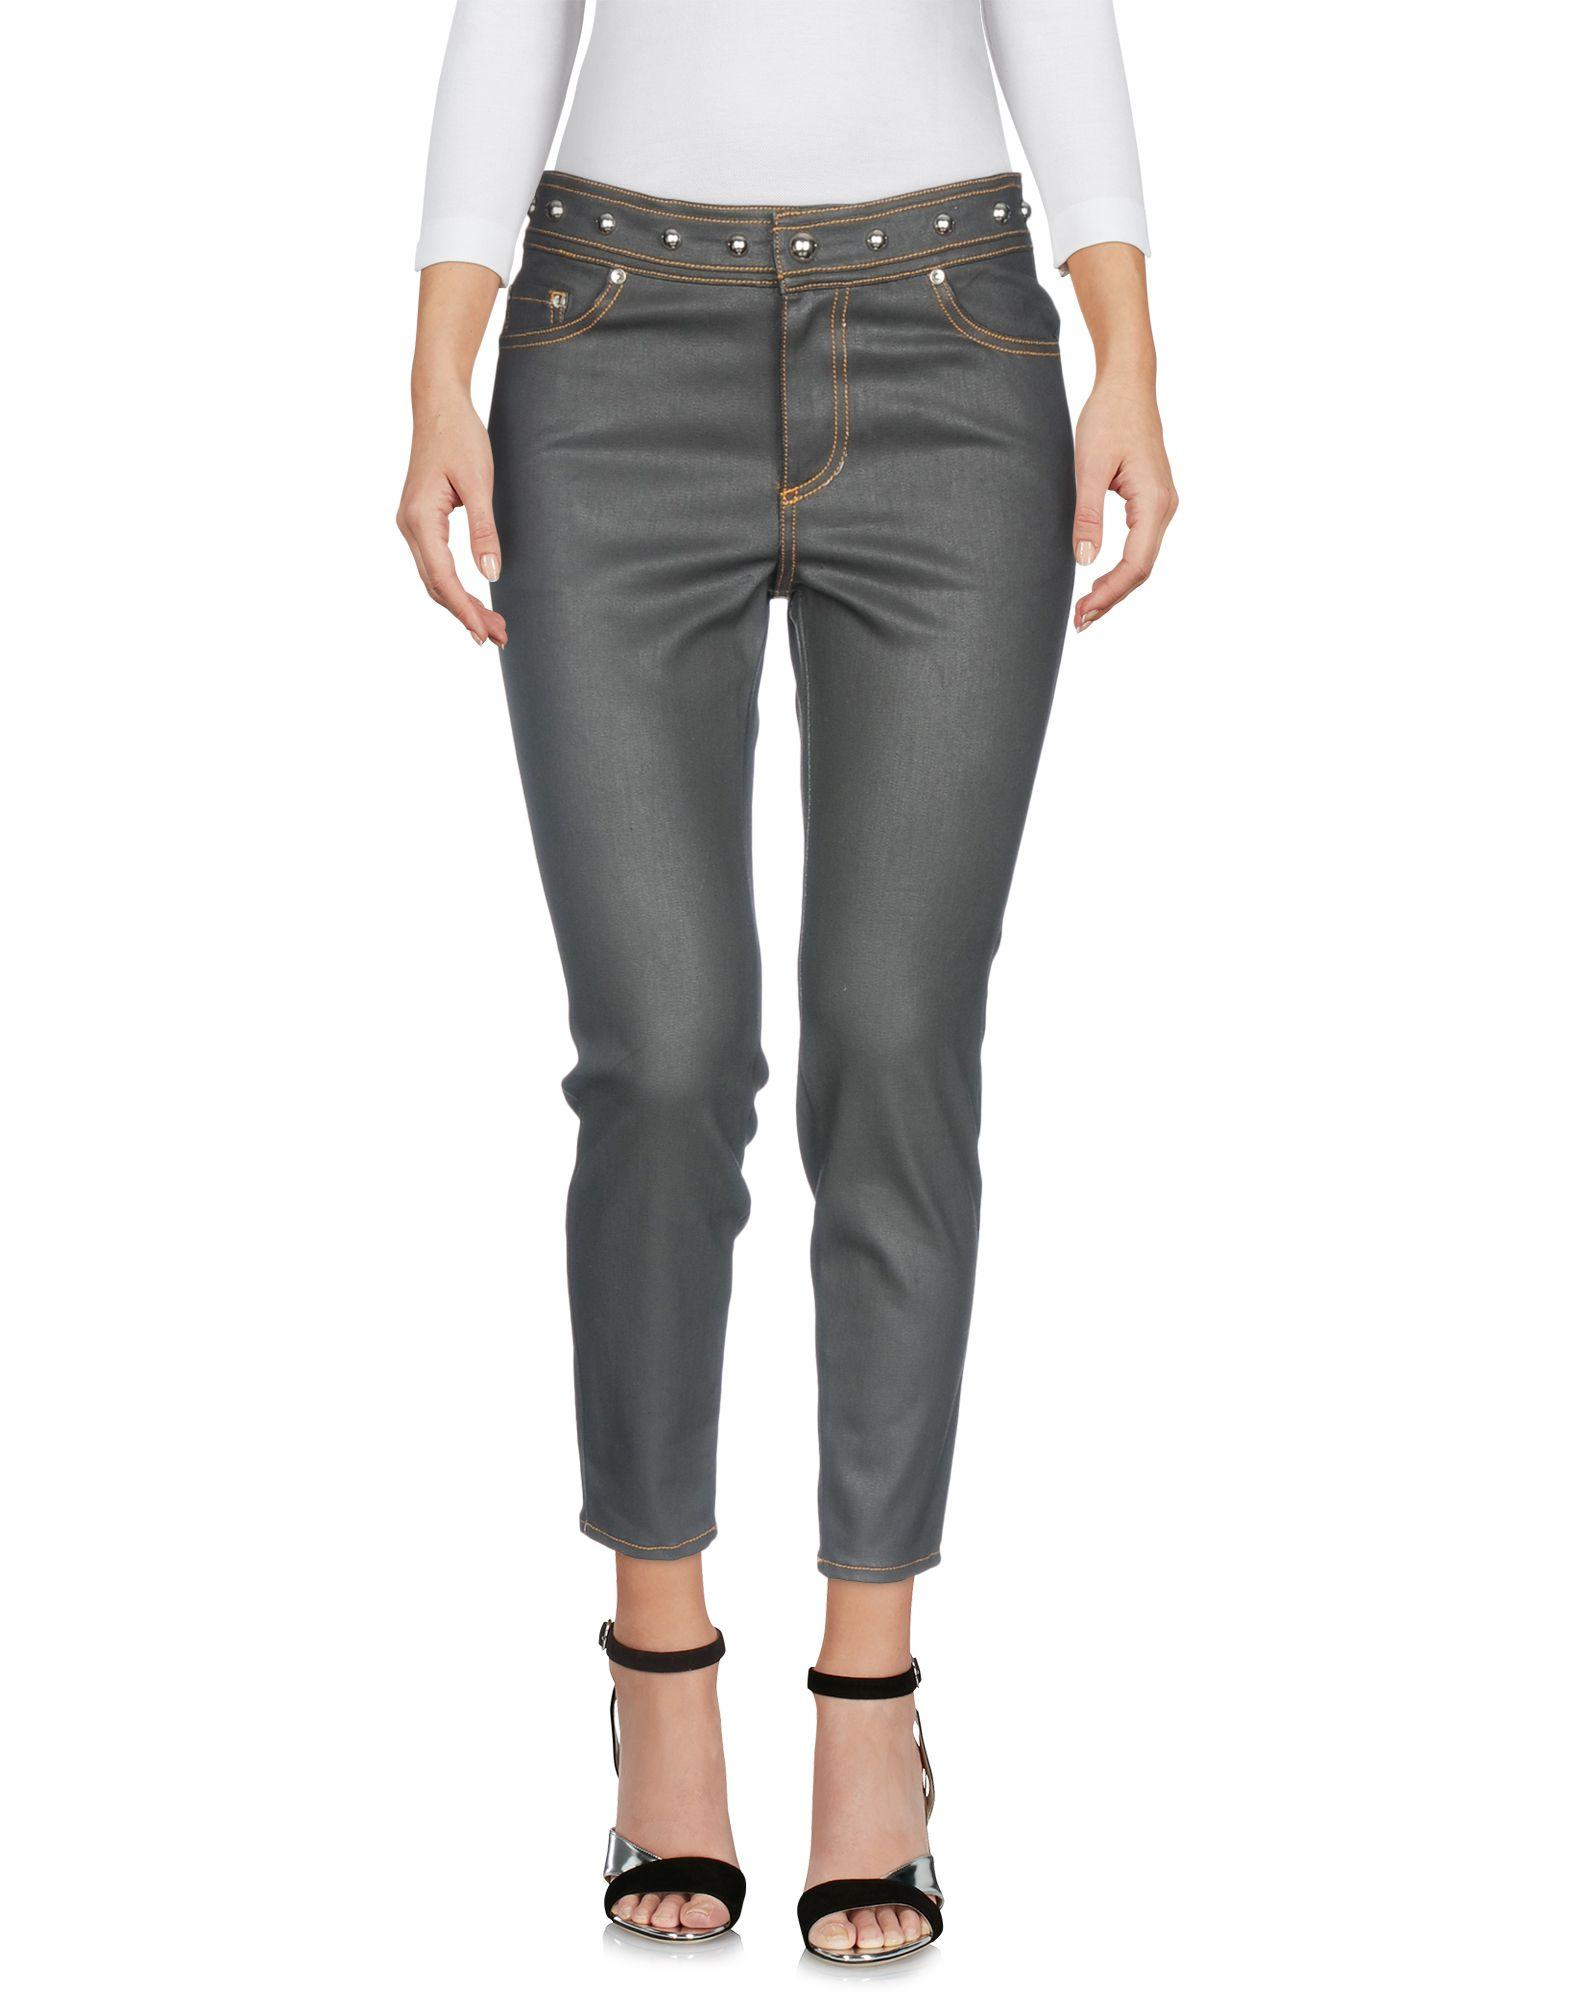 Red Valentino Jeans In Lead